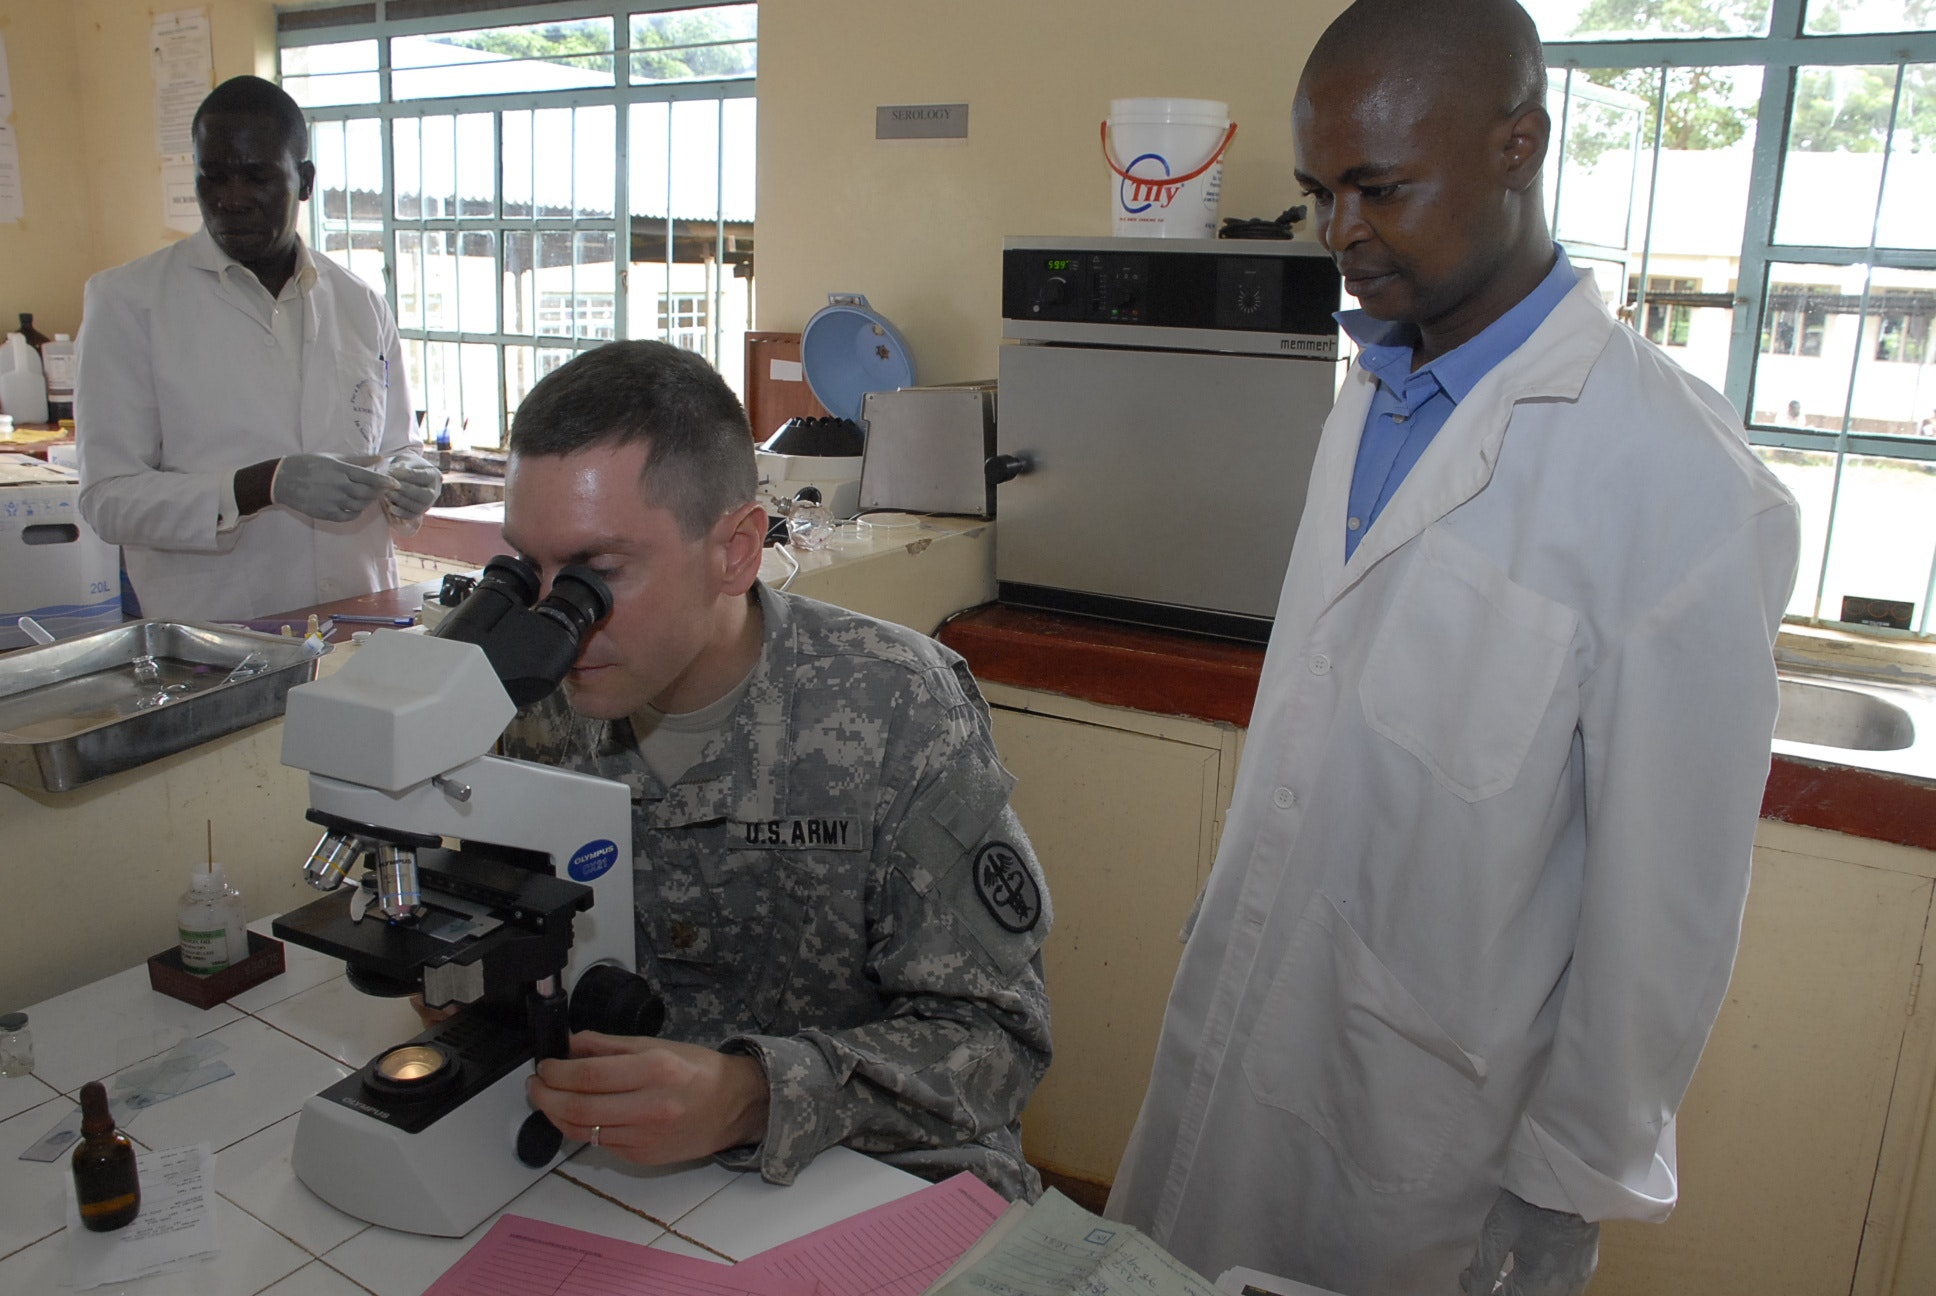 Not all international collaborations are equal. Photo credit: US Army Africa/Flickr